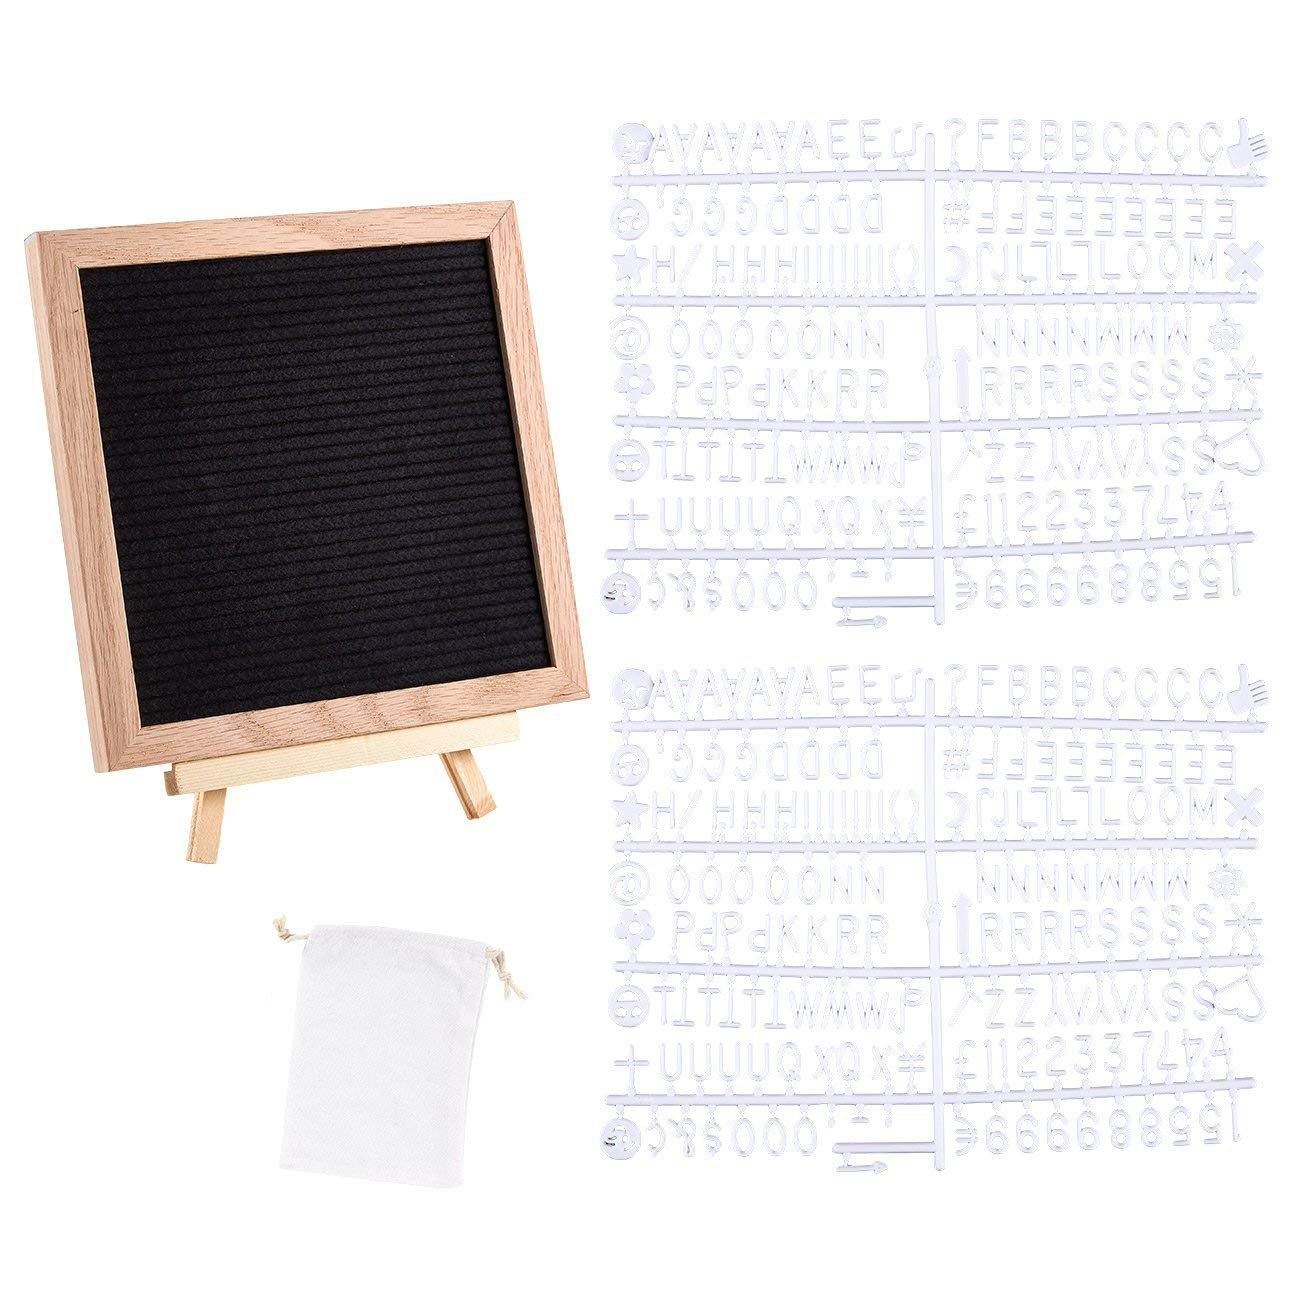 Felt Letter Board - Changeable Letter Board with Wooden Easel Stand, Drawstring Bag and 340 Plastic Letters, Numbers, and Emoji Symbols for Message Display, Office Signs, Decoration, 10 x 10 inches